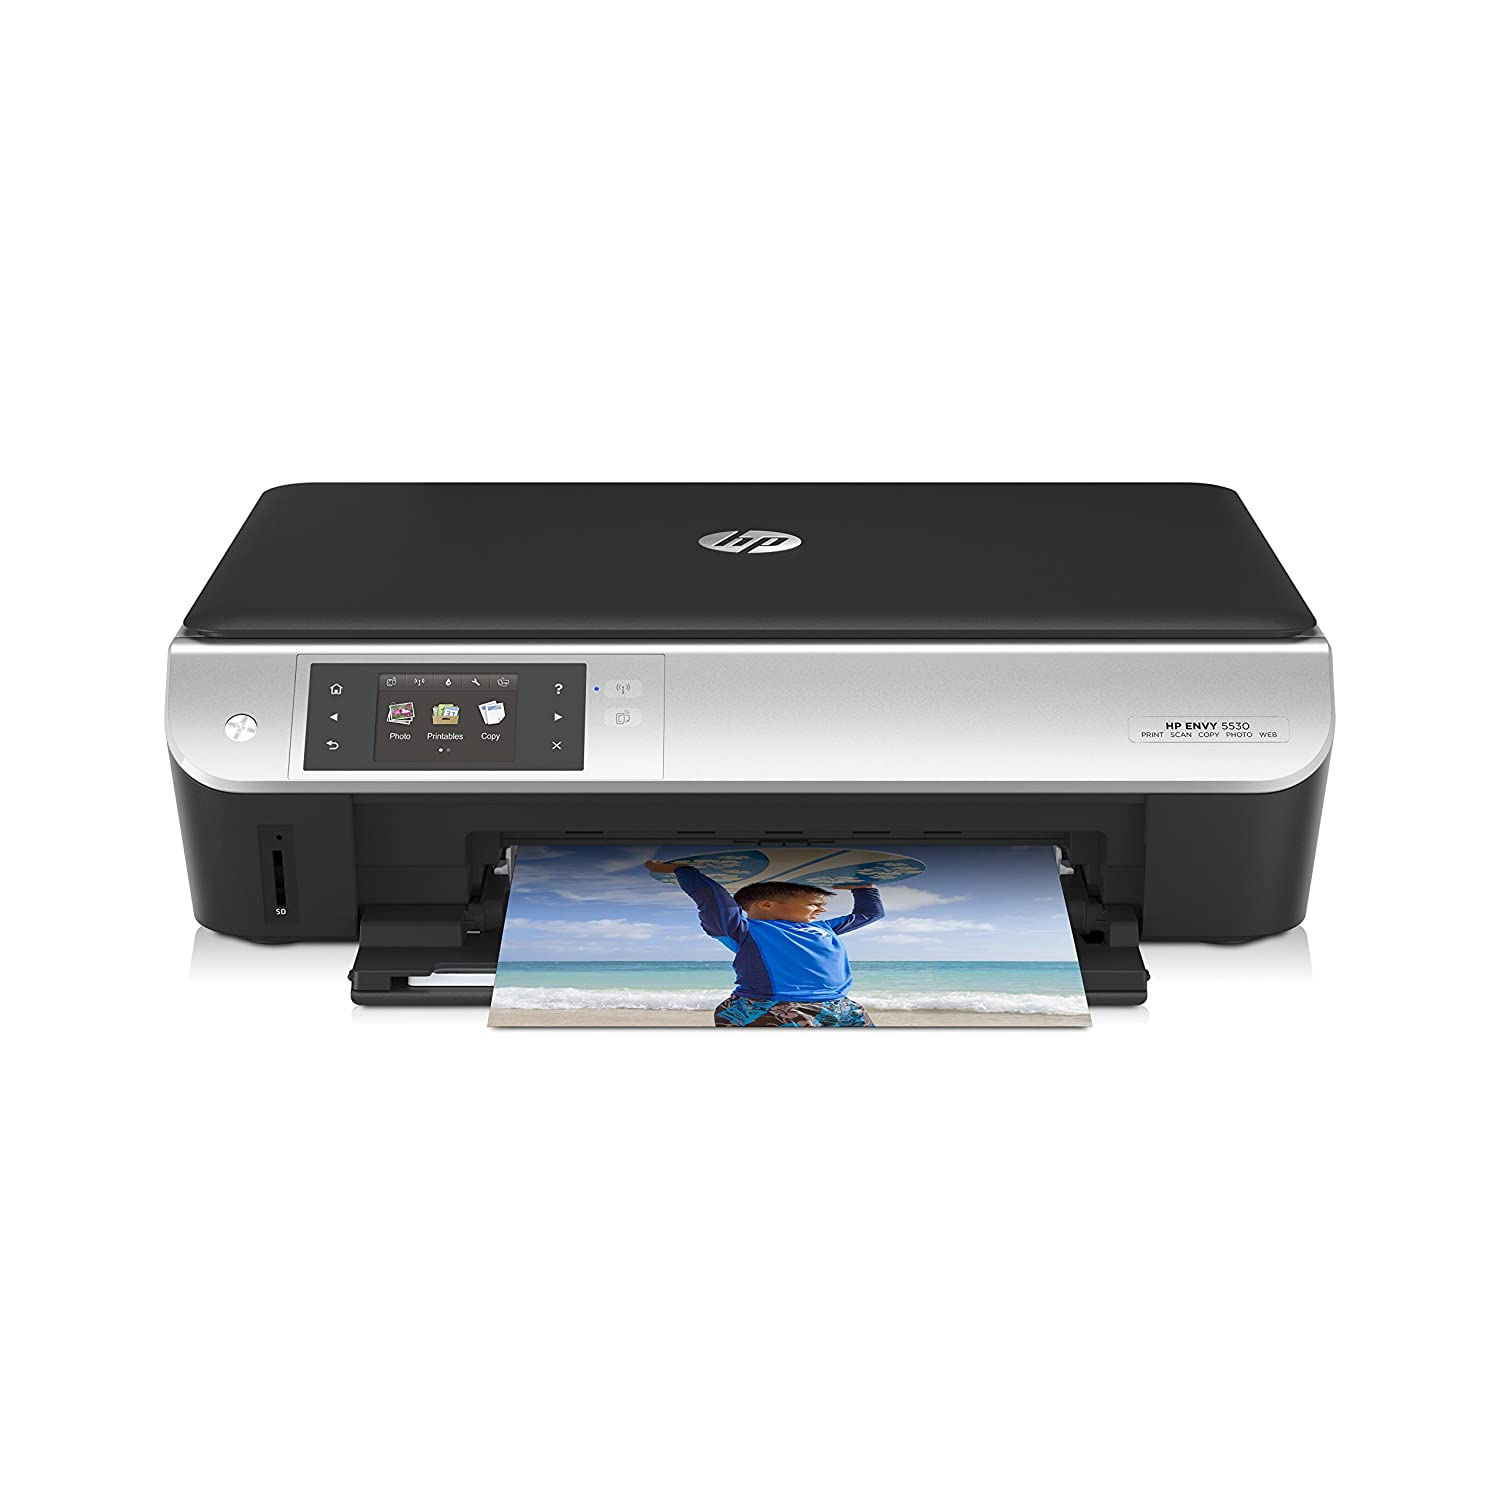 Amazon.com: HP Envy 5530 e-AiO Printer: Computers & Accessories